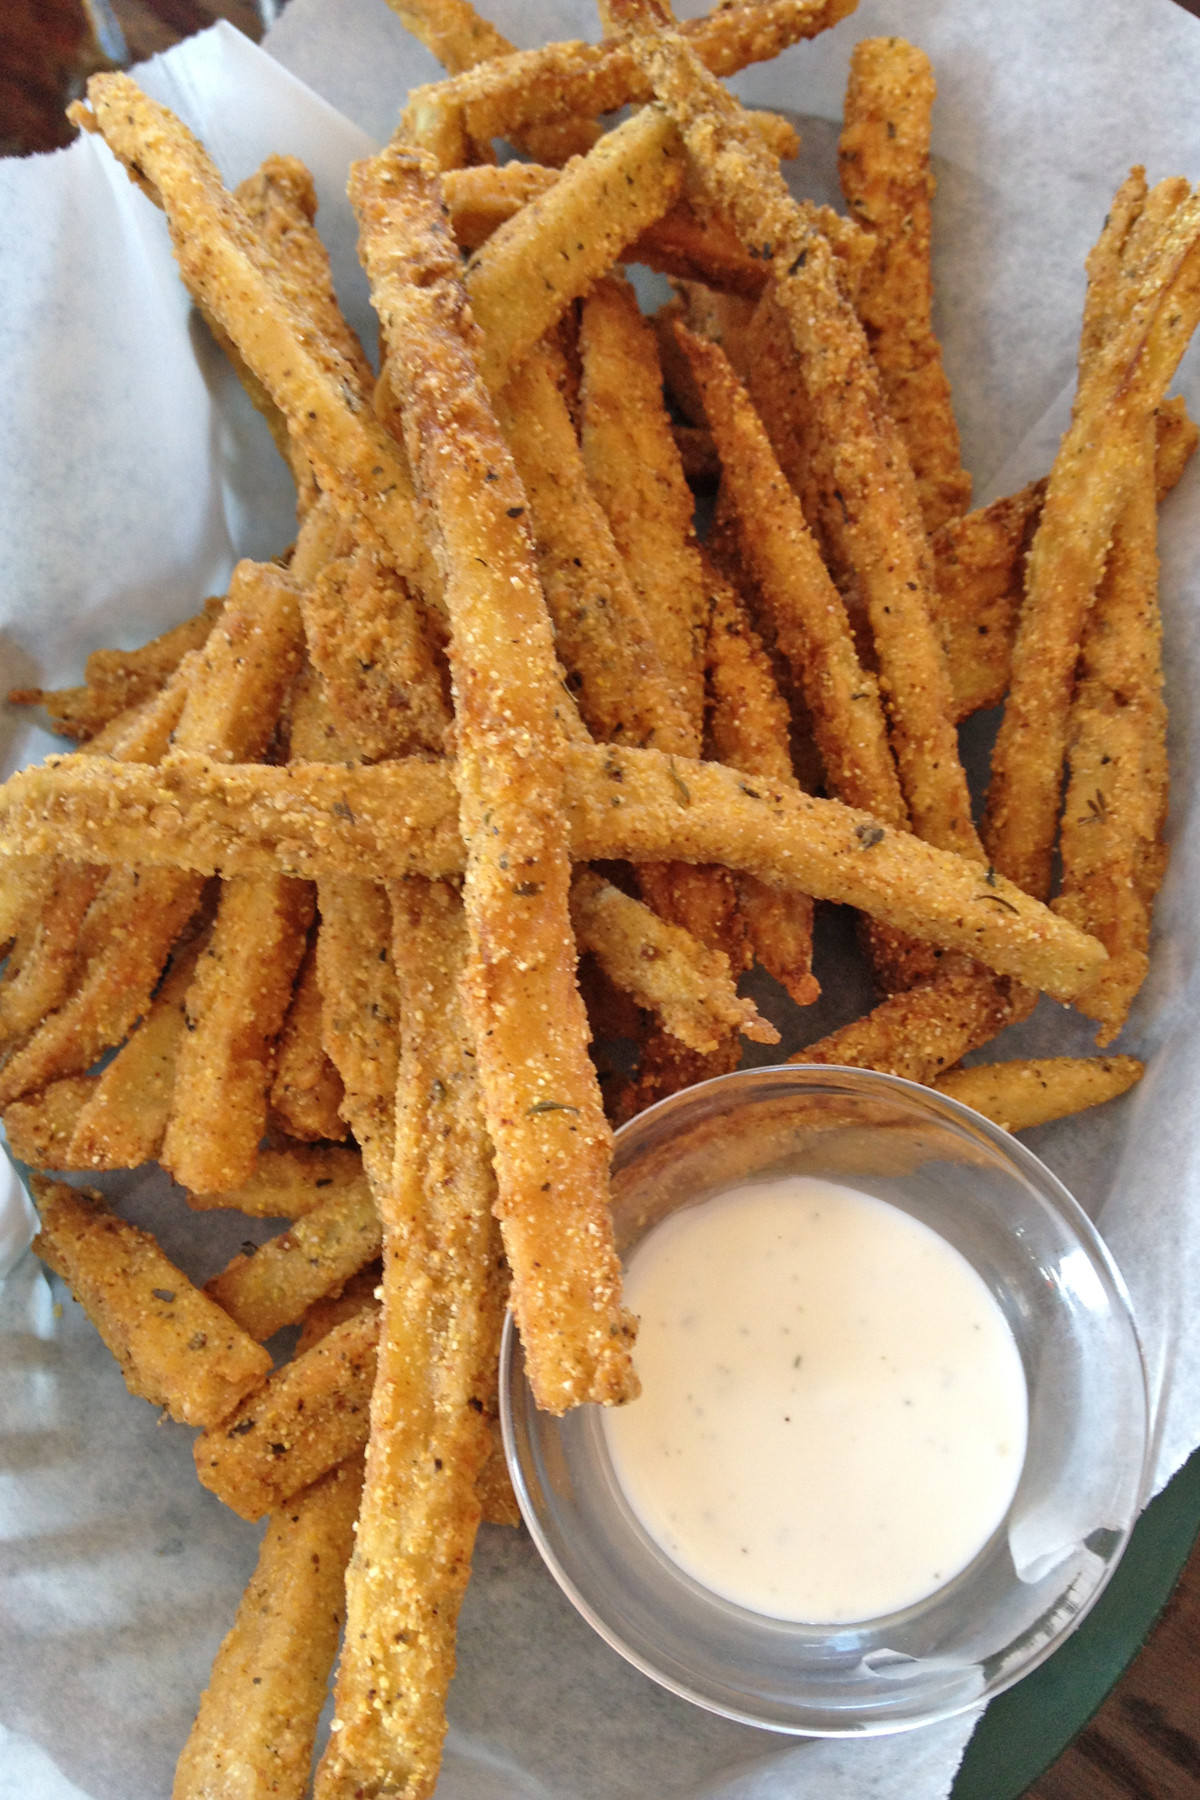 A heaping portion of thin, seasoned, cornmeal-dusted eggplant strips are served with a light homemade ranch dressing.